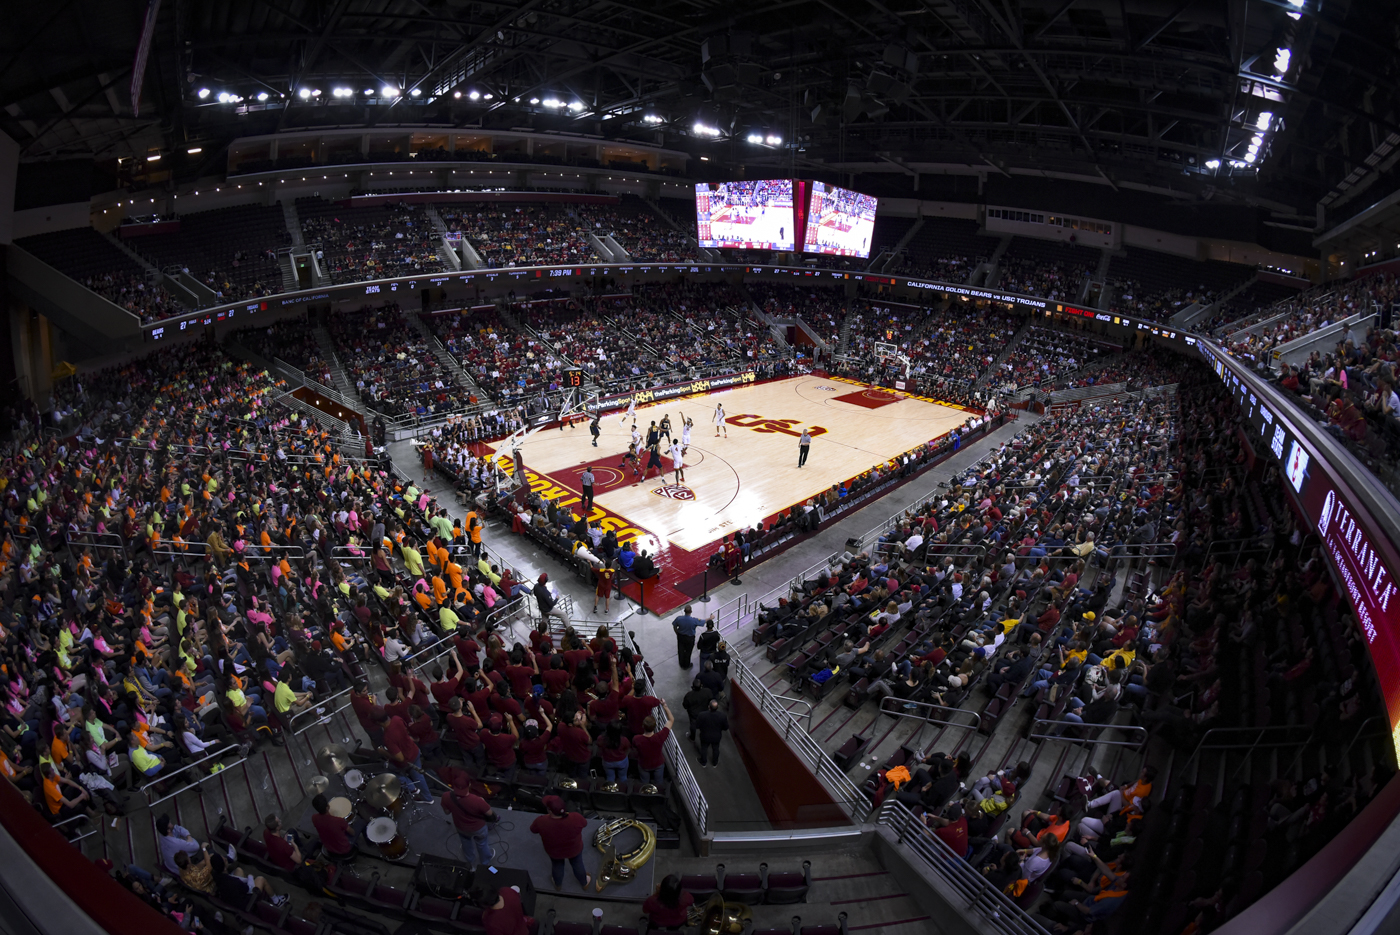 Boys' basketball: It's a sellout at Galen Center